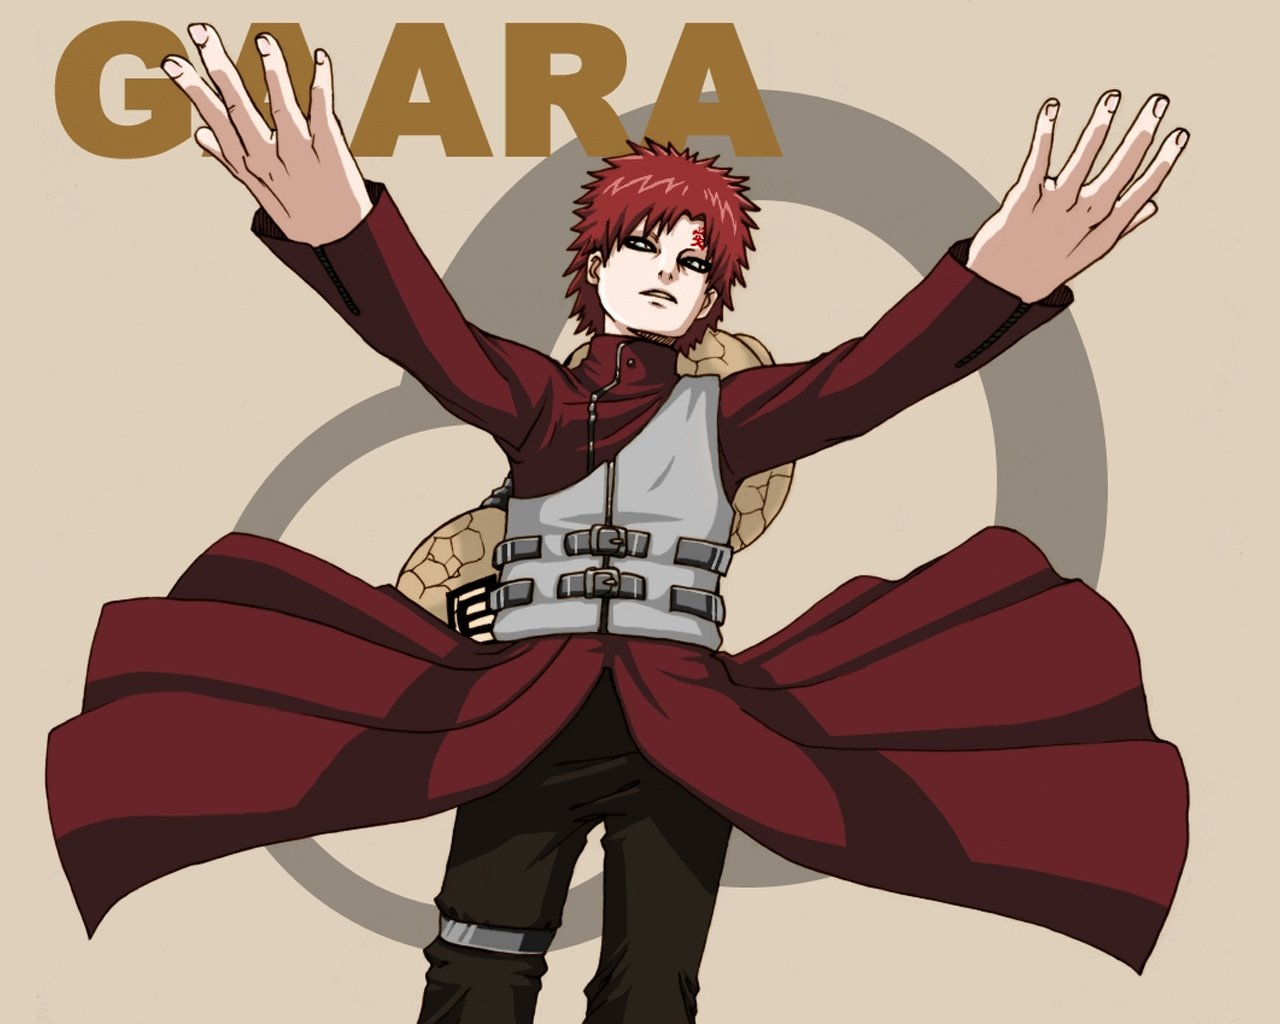 Wallpapers de Gaara y Naruto 1280x1024